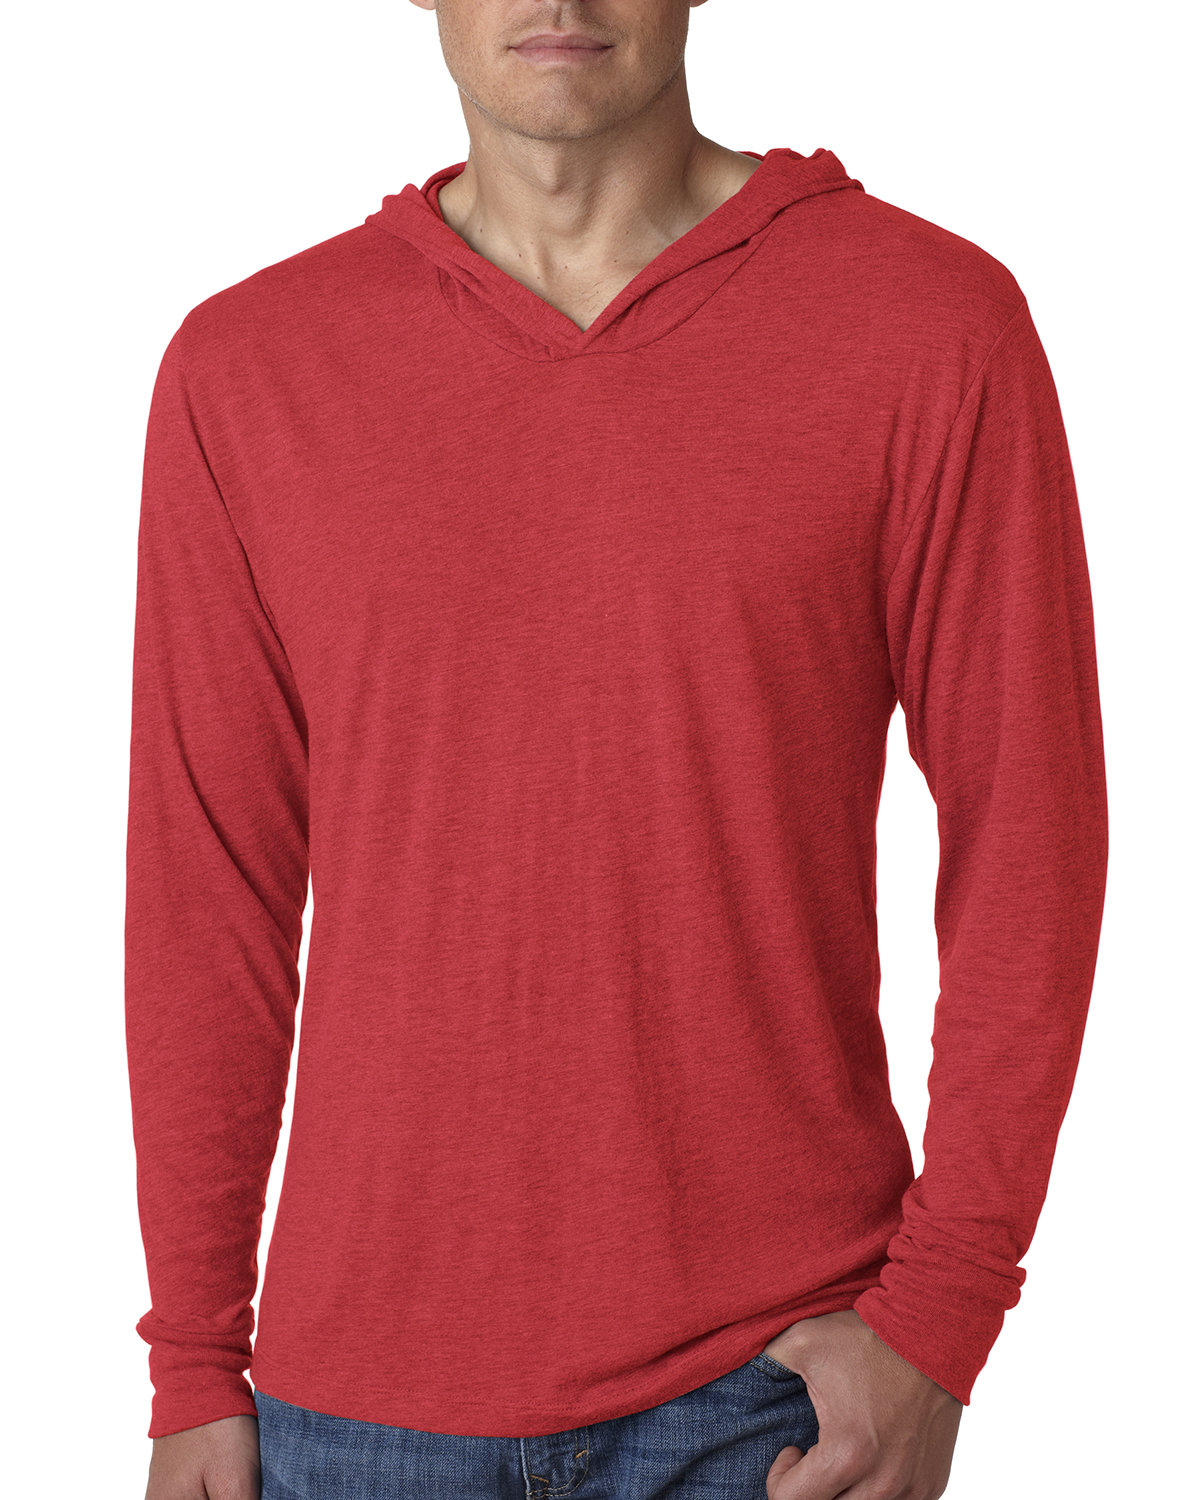 Next Level Adult Triblend Long-Sleeve Hoody VINTAGE RED